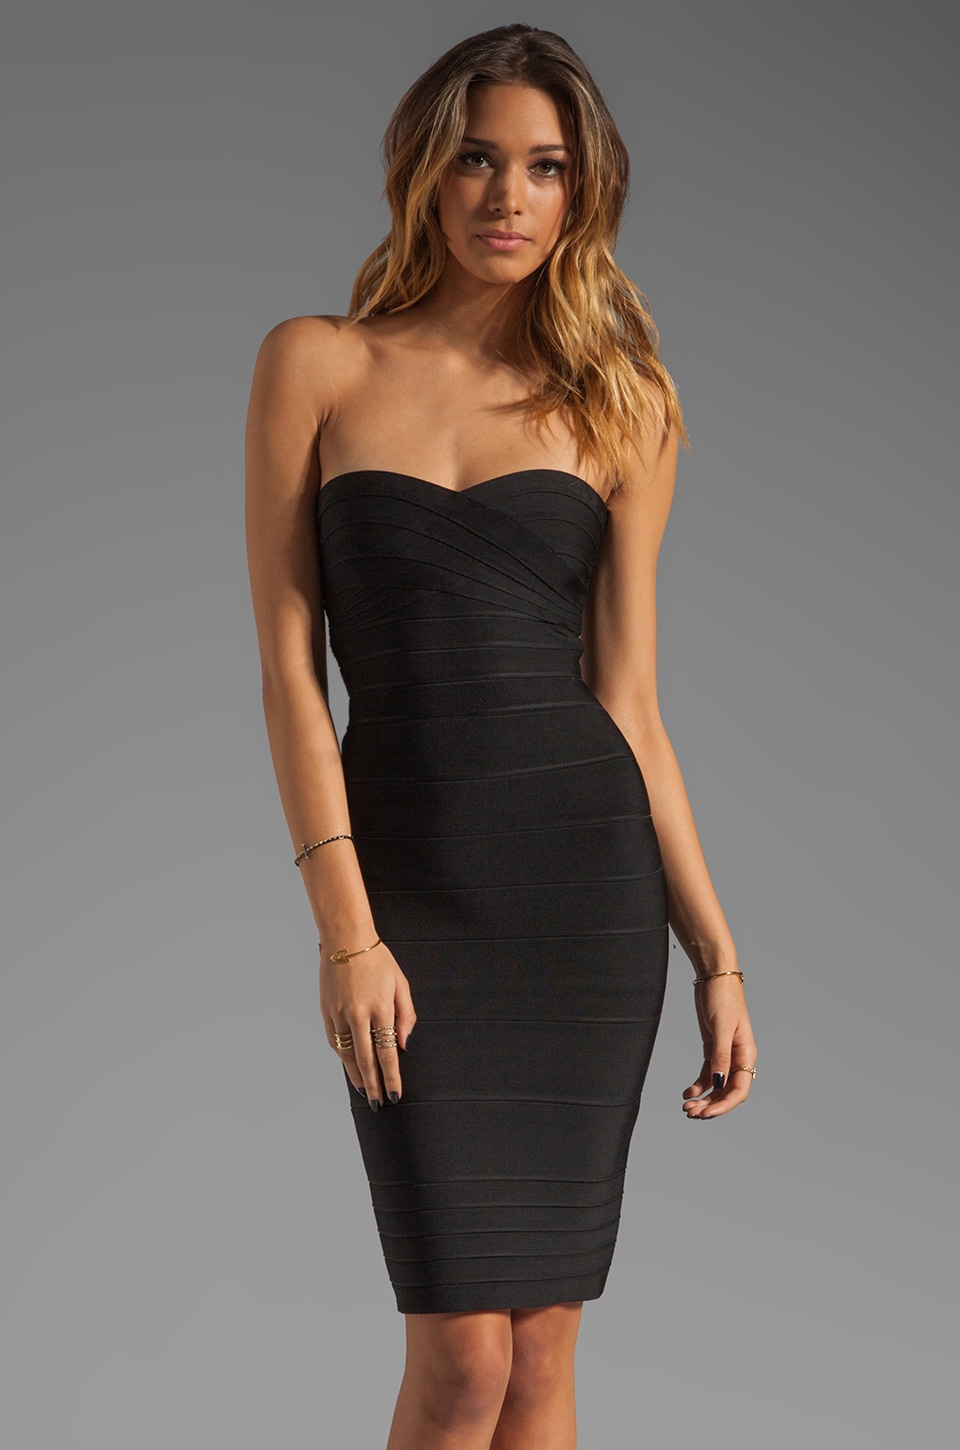 ERIN erin fetherston Danielle Dress in Black